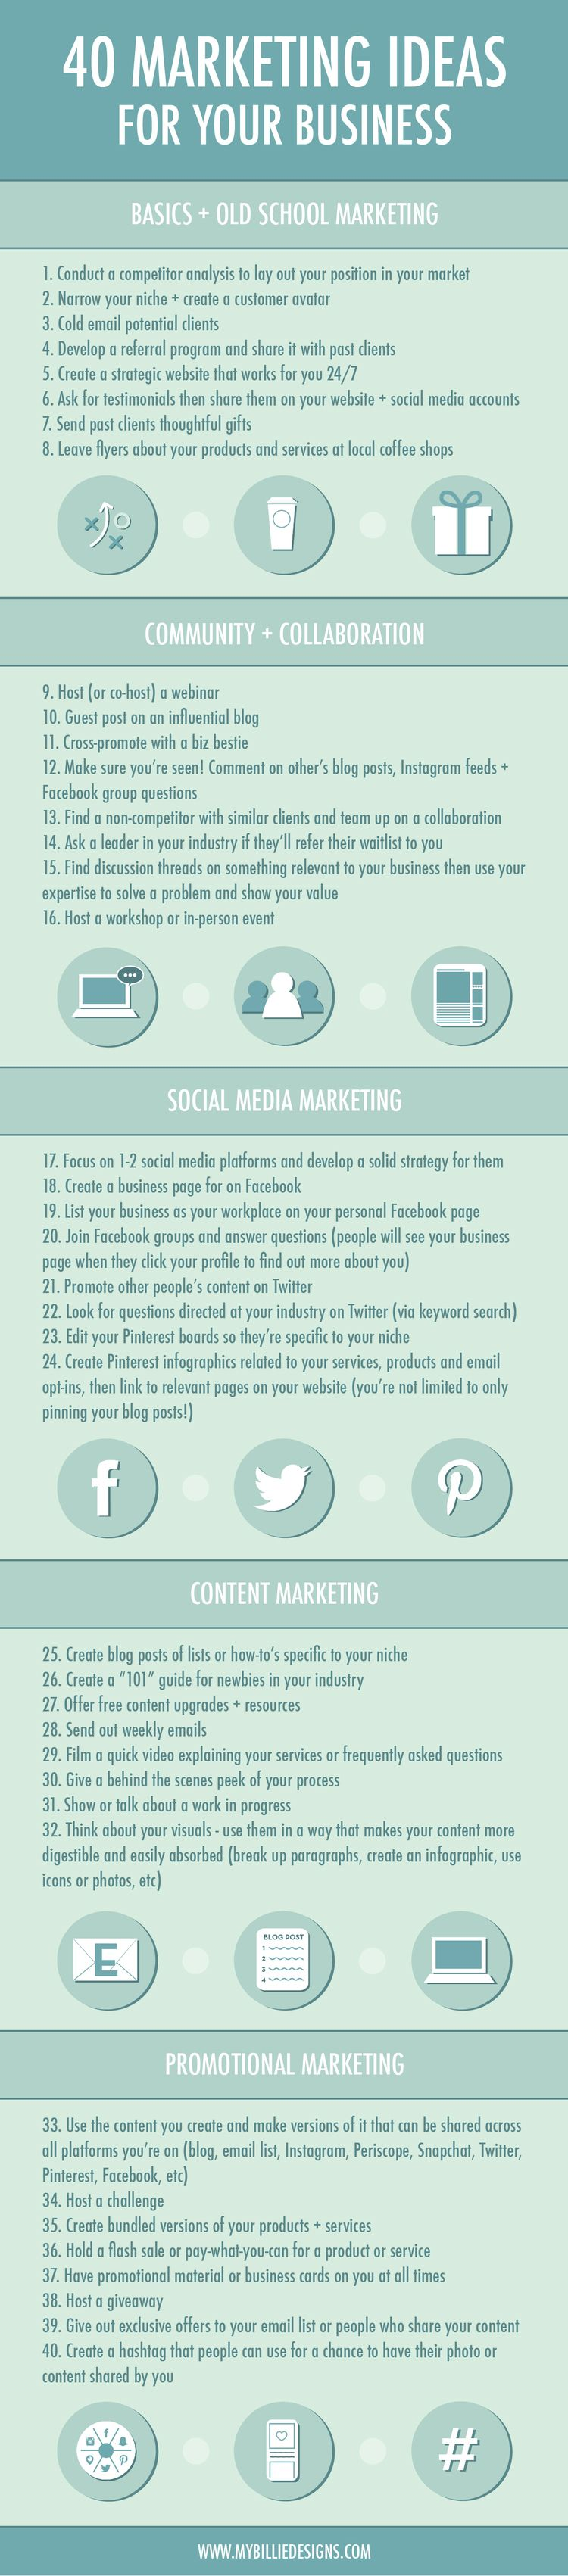 Marketing Ideas For Your Business Infographic  Marketing